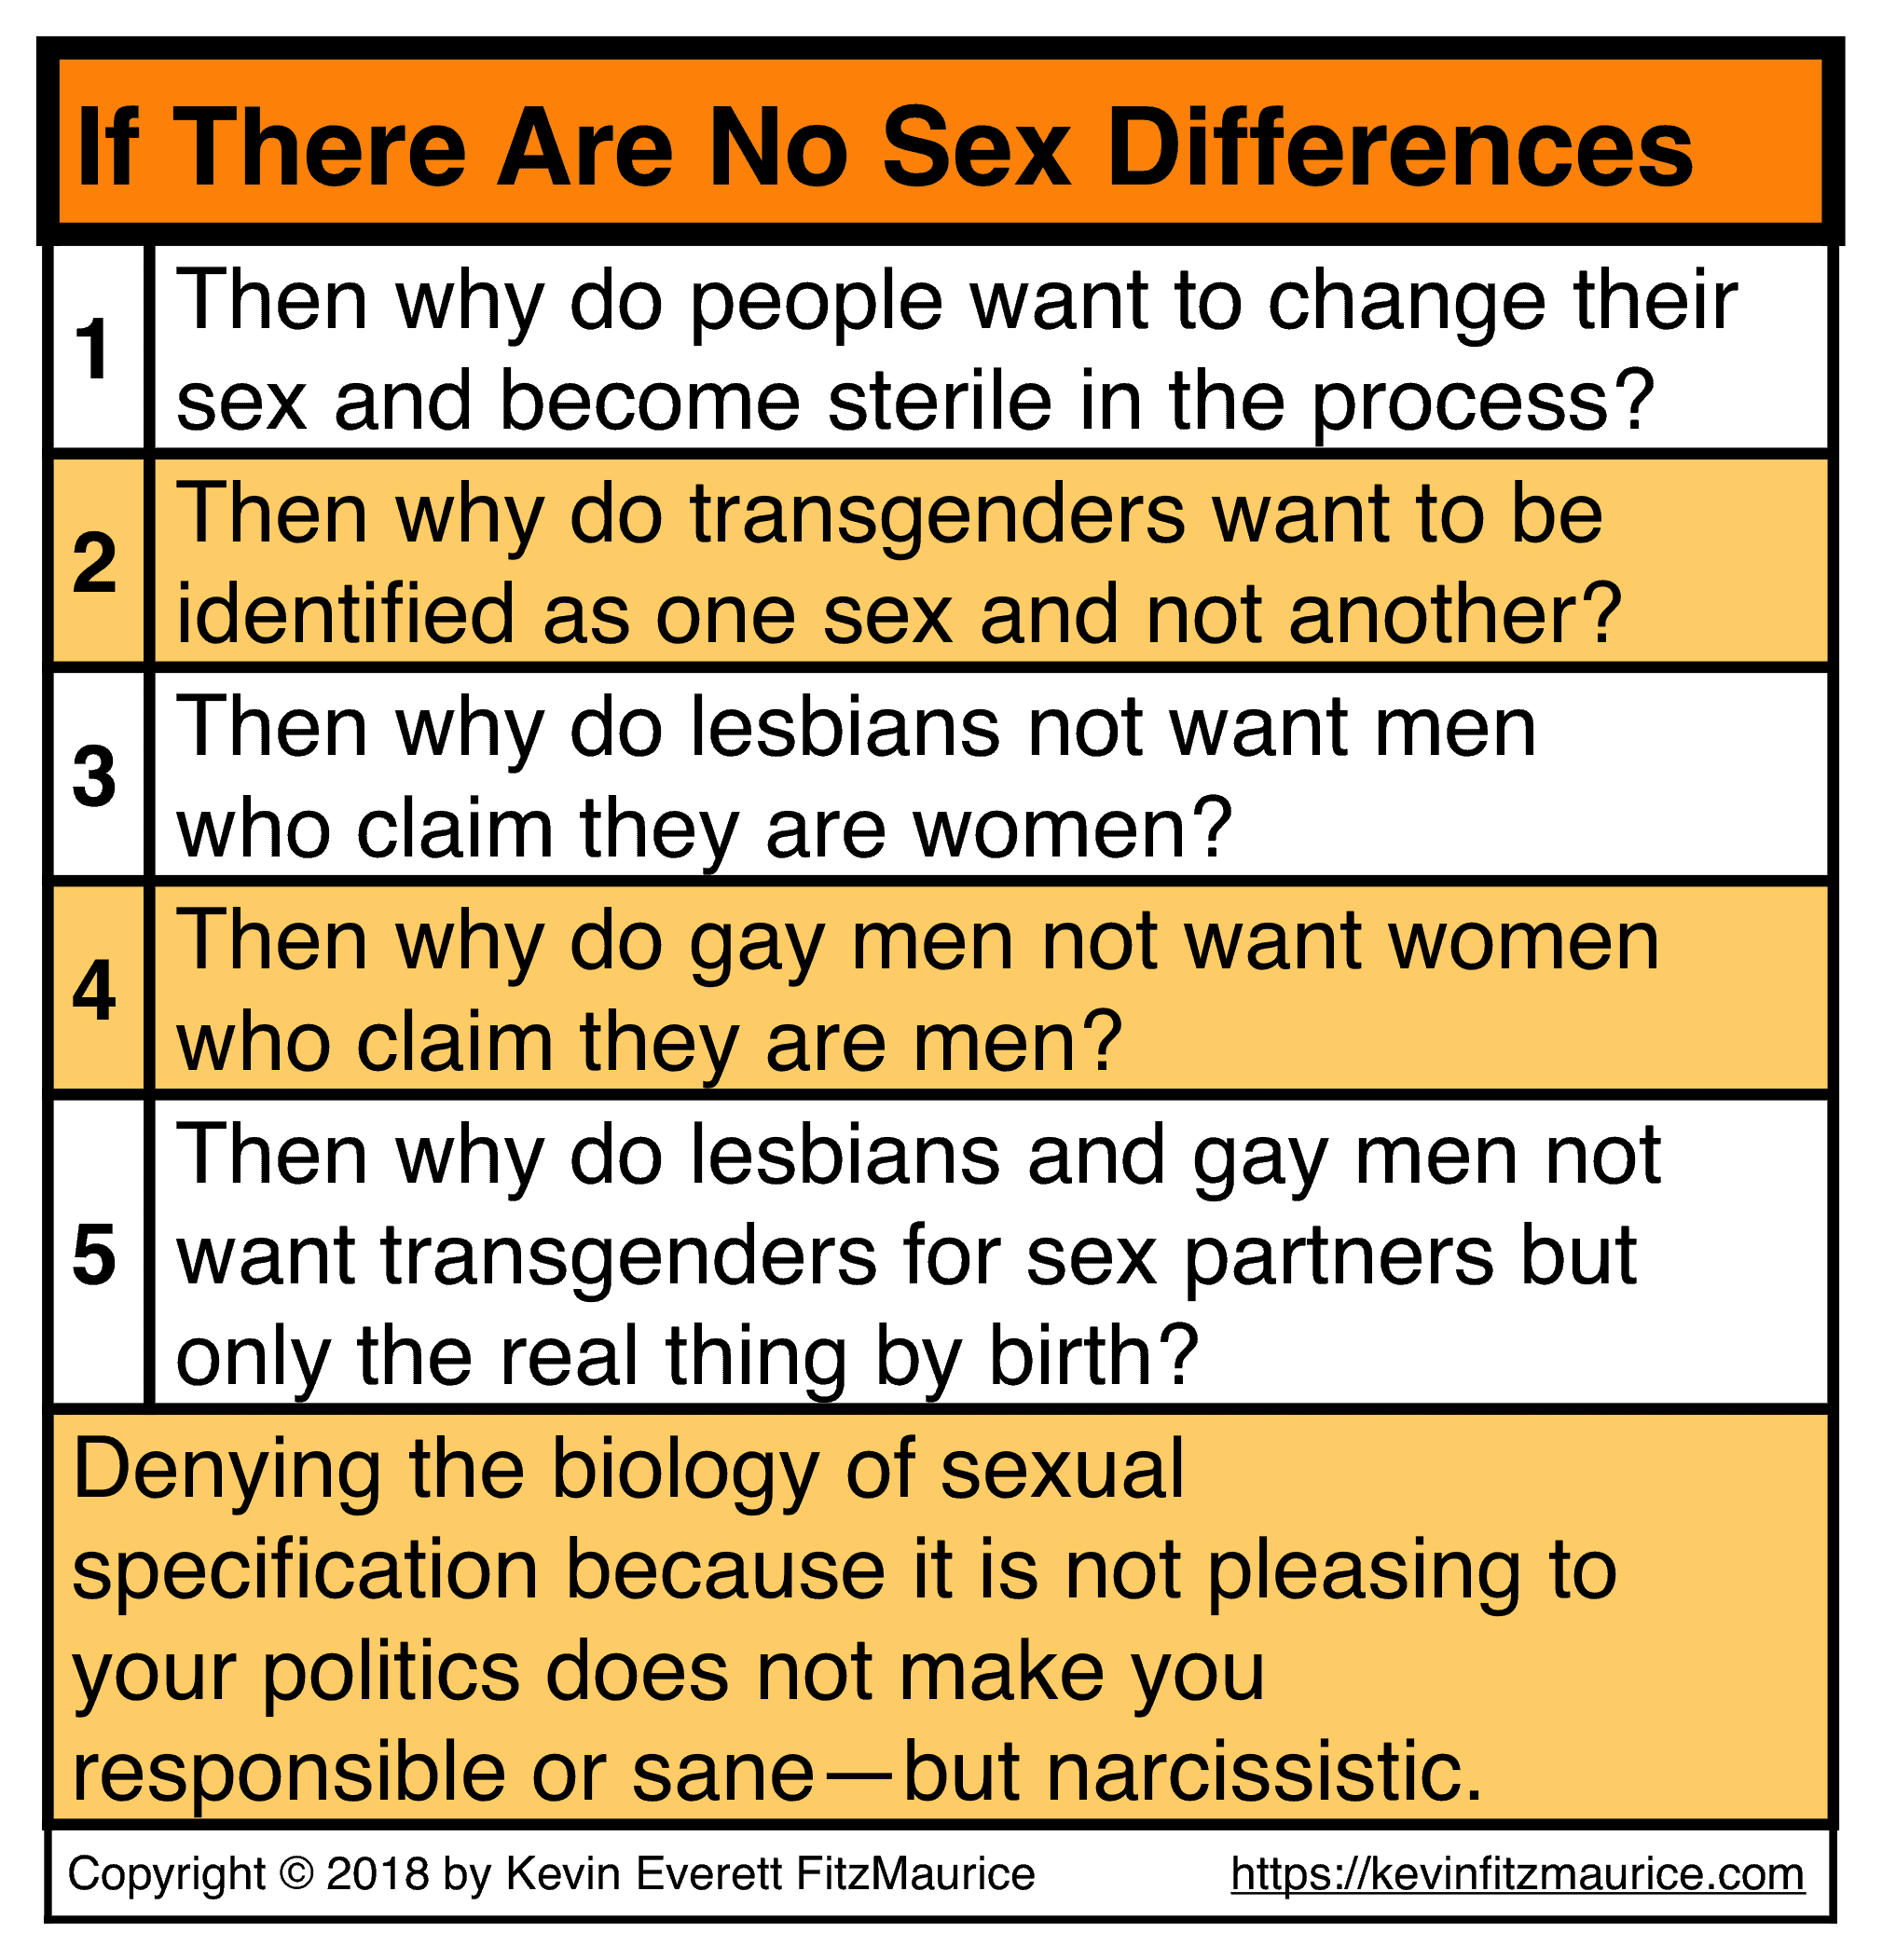 Are Sex Differences Real?